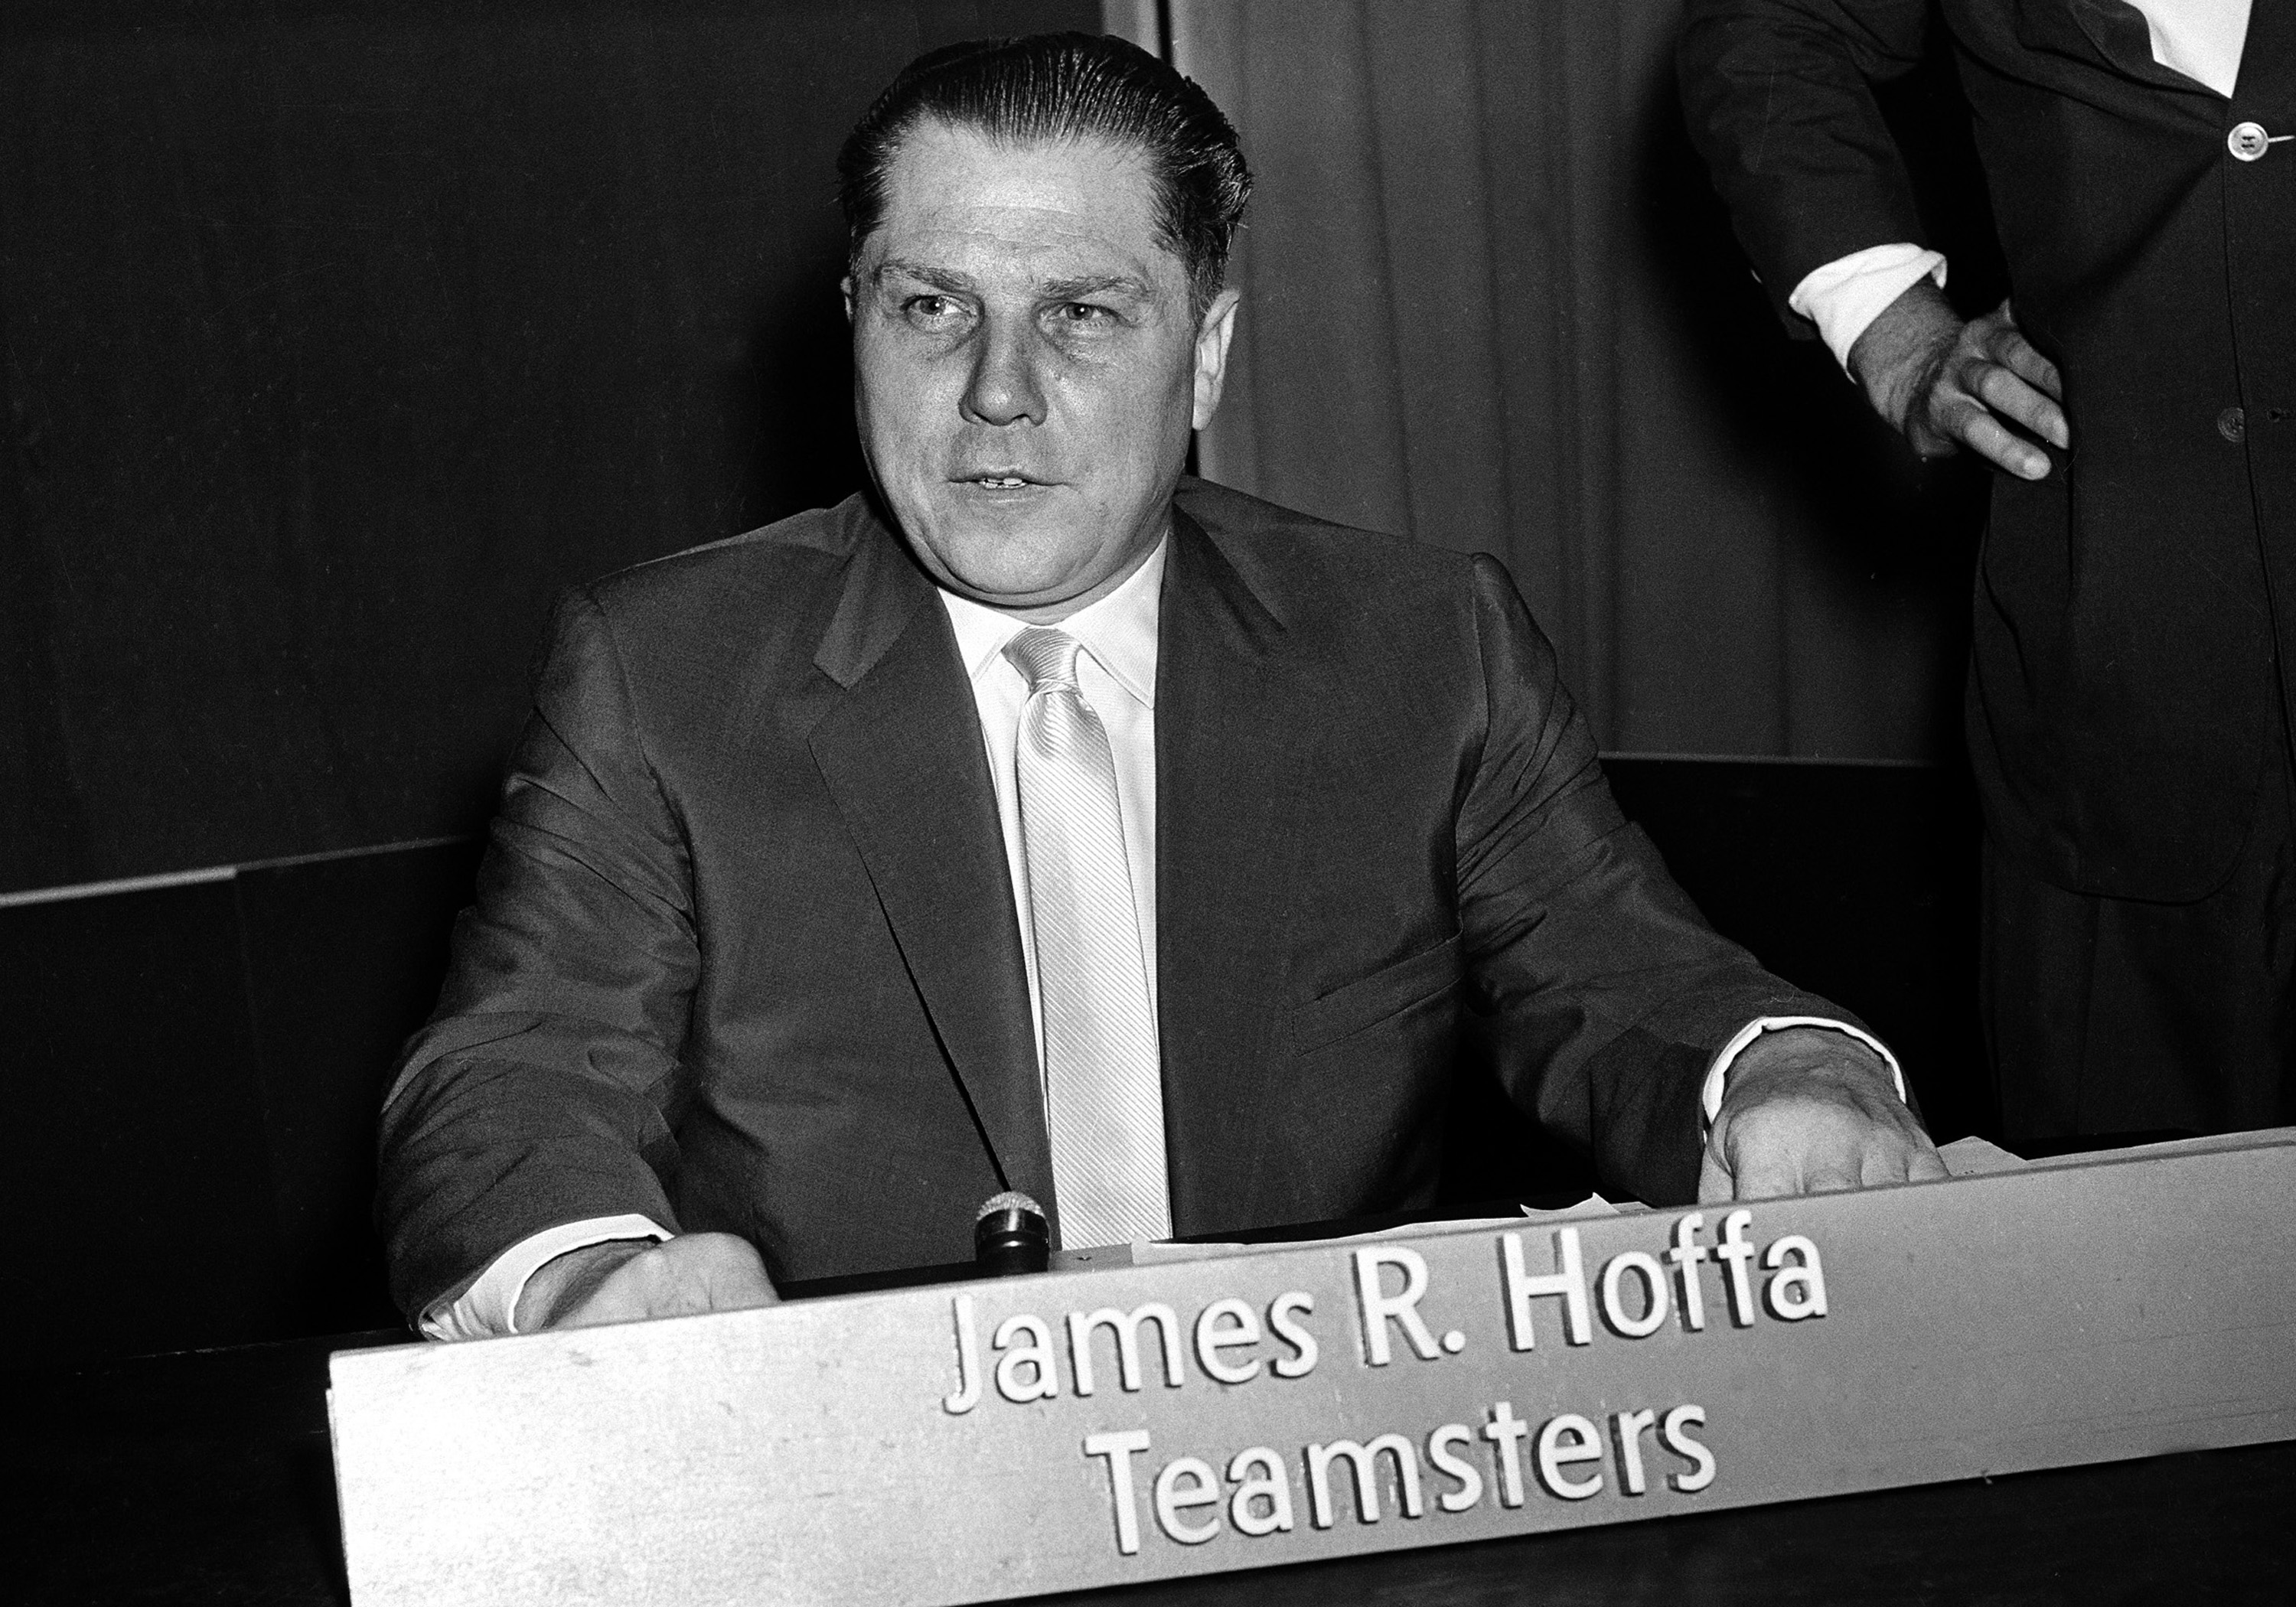 jimmy hoffa and the teamsters